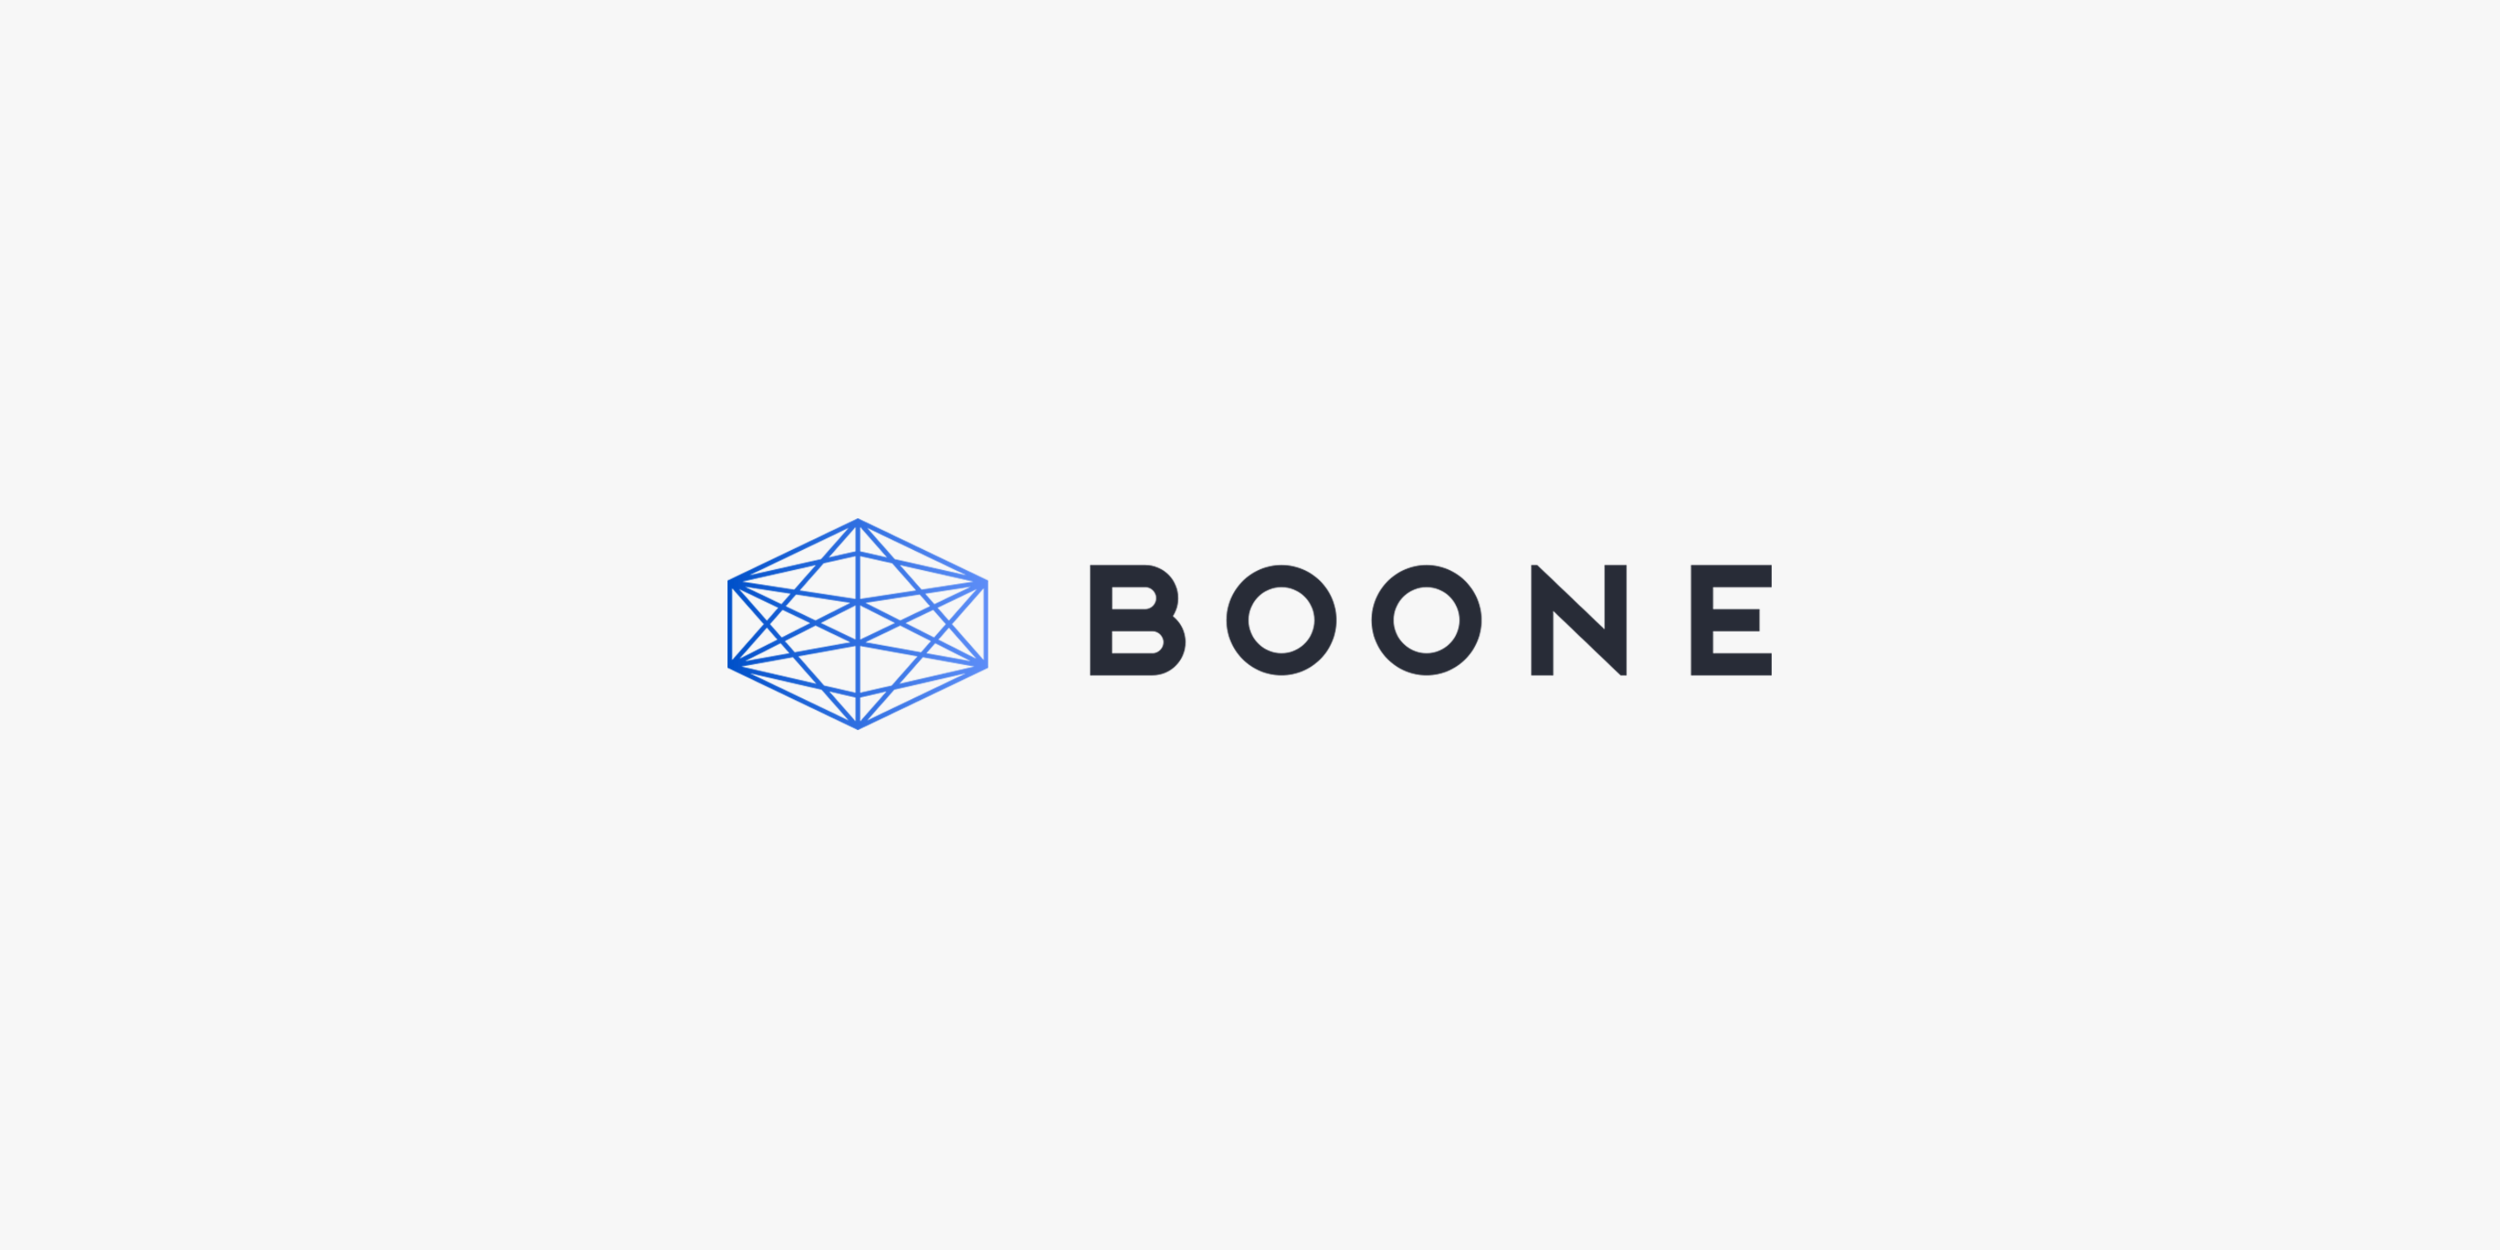 WBCG_Boone_LogoGradient4.png